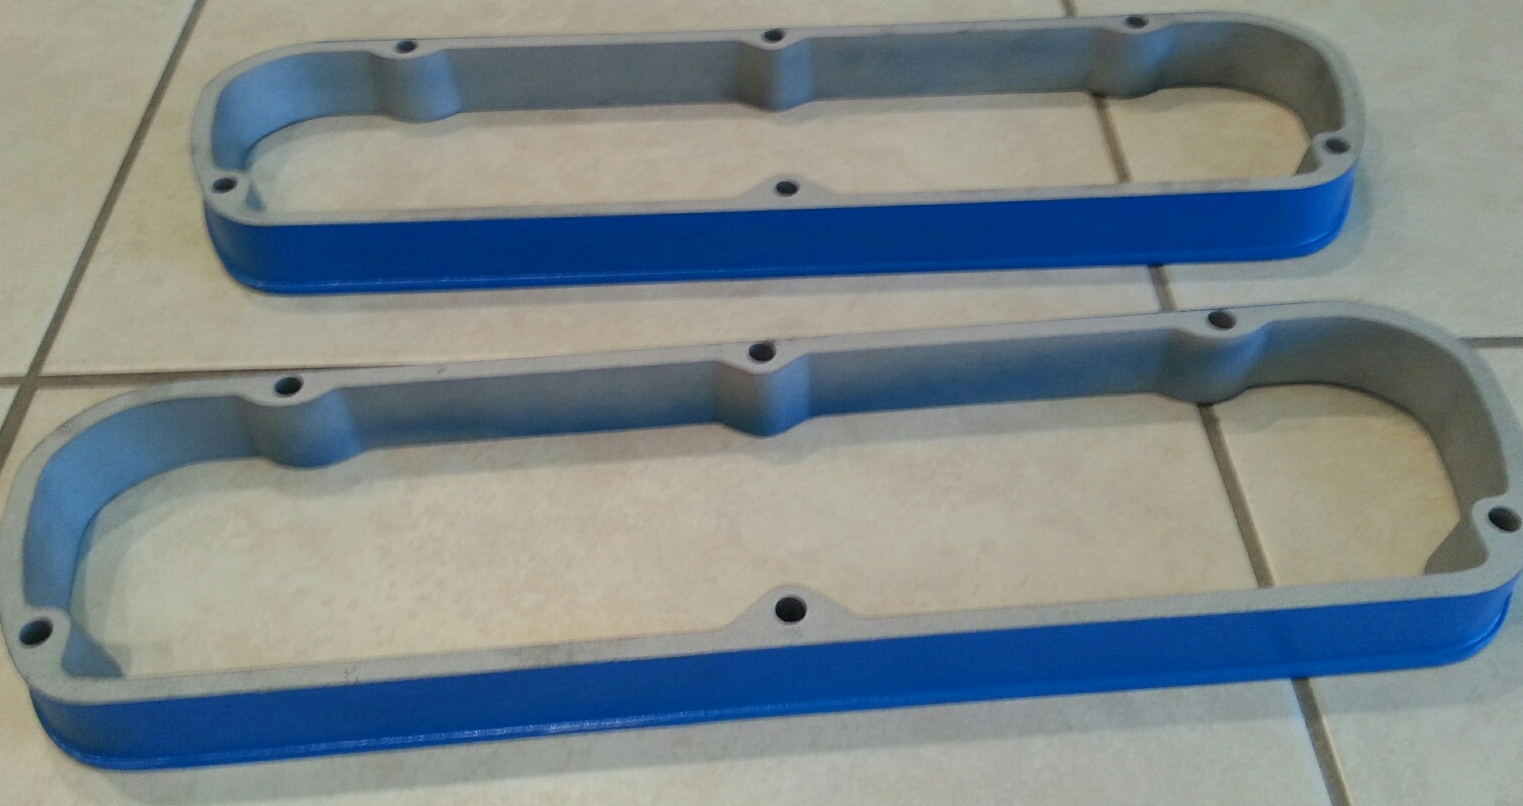 SBF Trick-flow twisted wedge rocker stud girdles and valve cover spacers-20170709_115700_resized-1-jpg